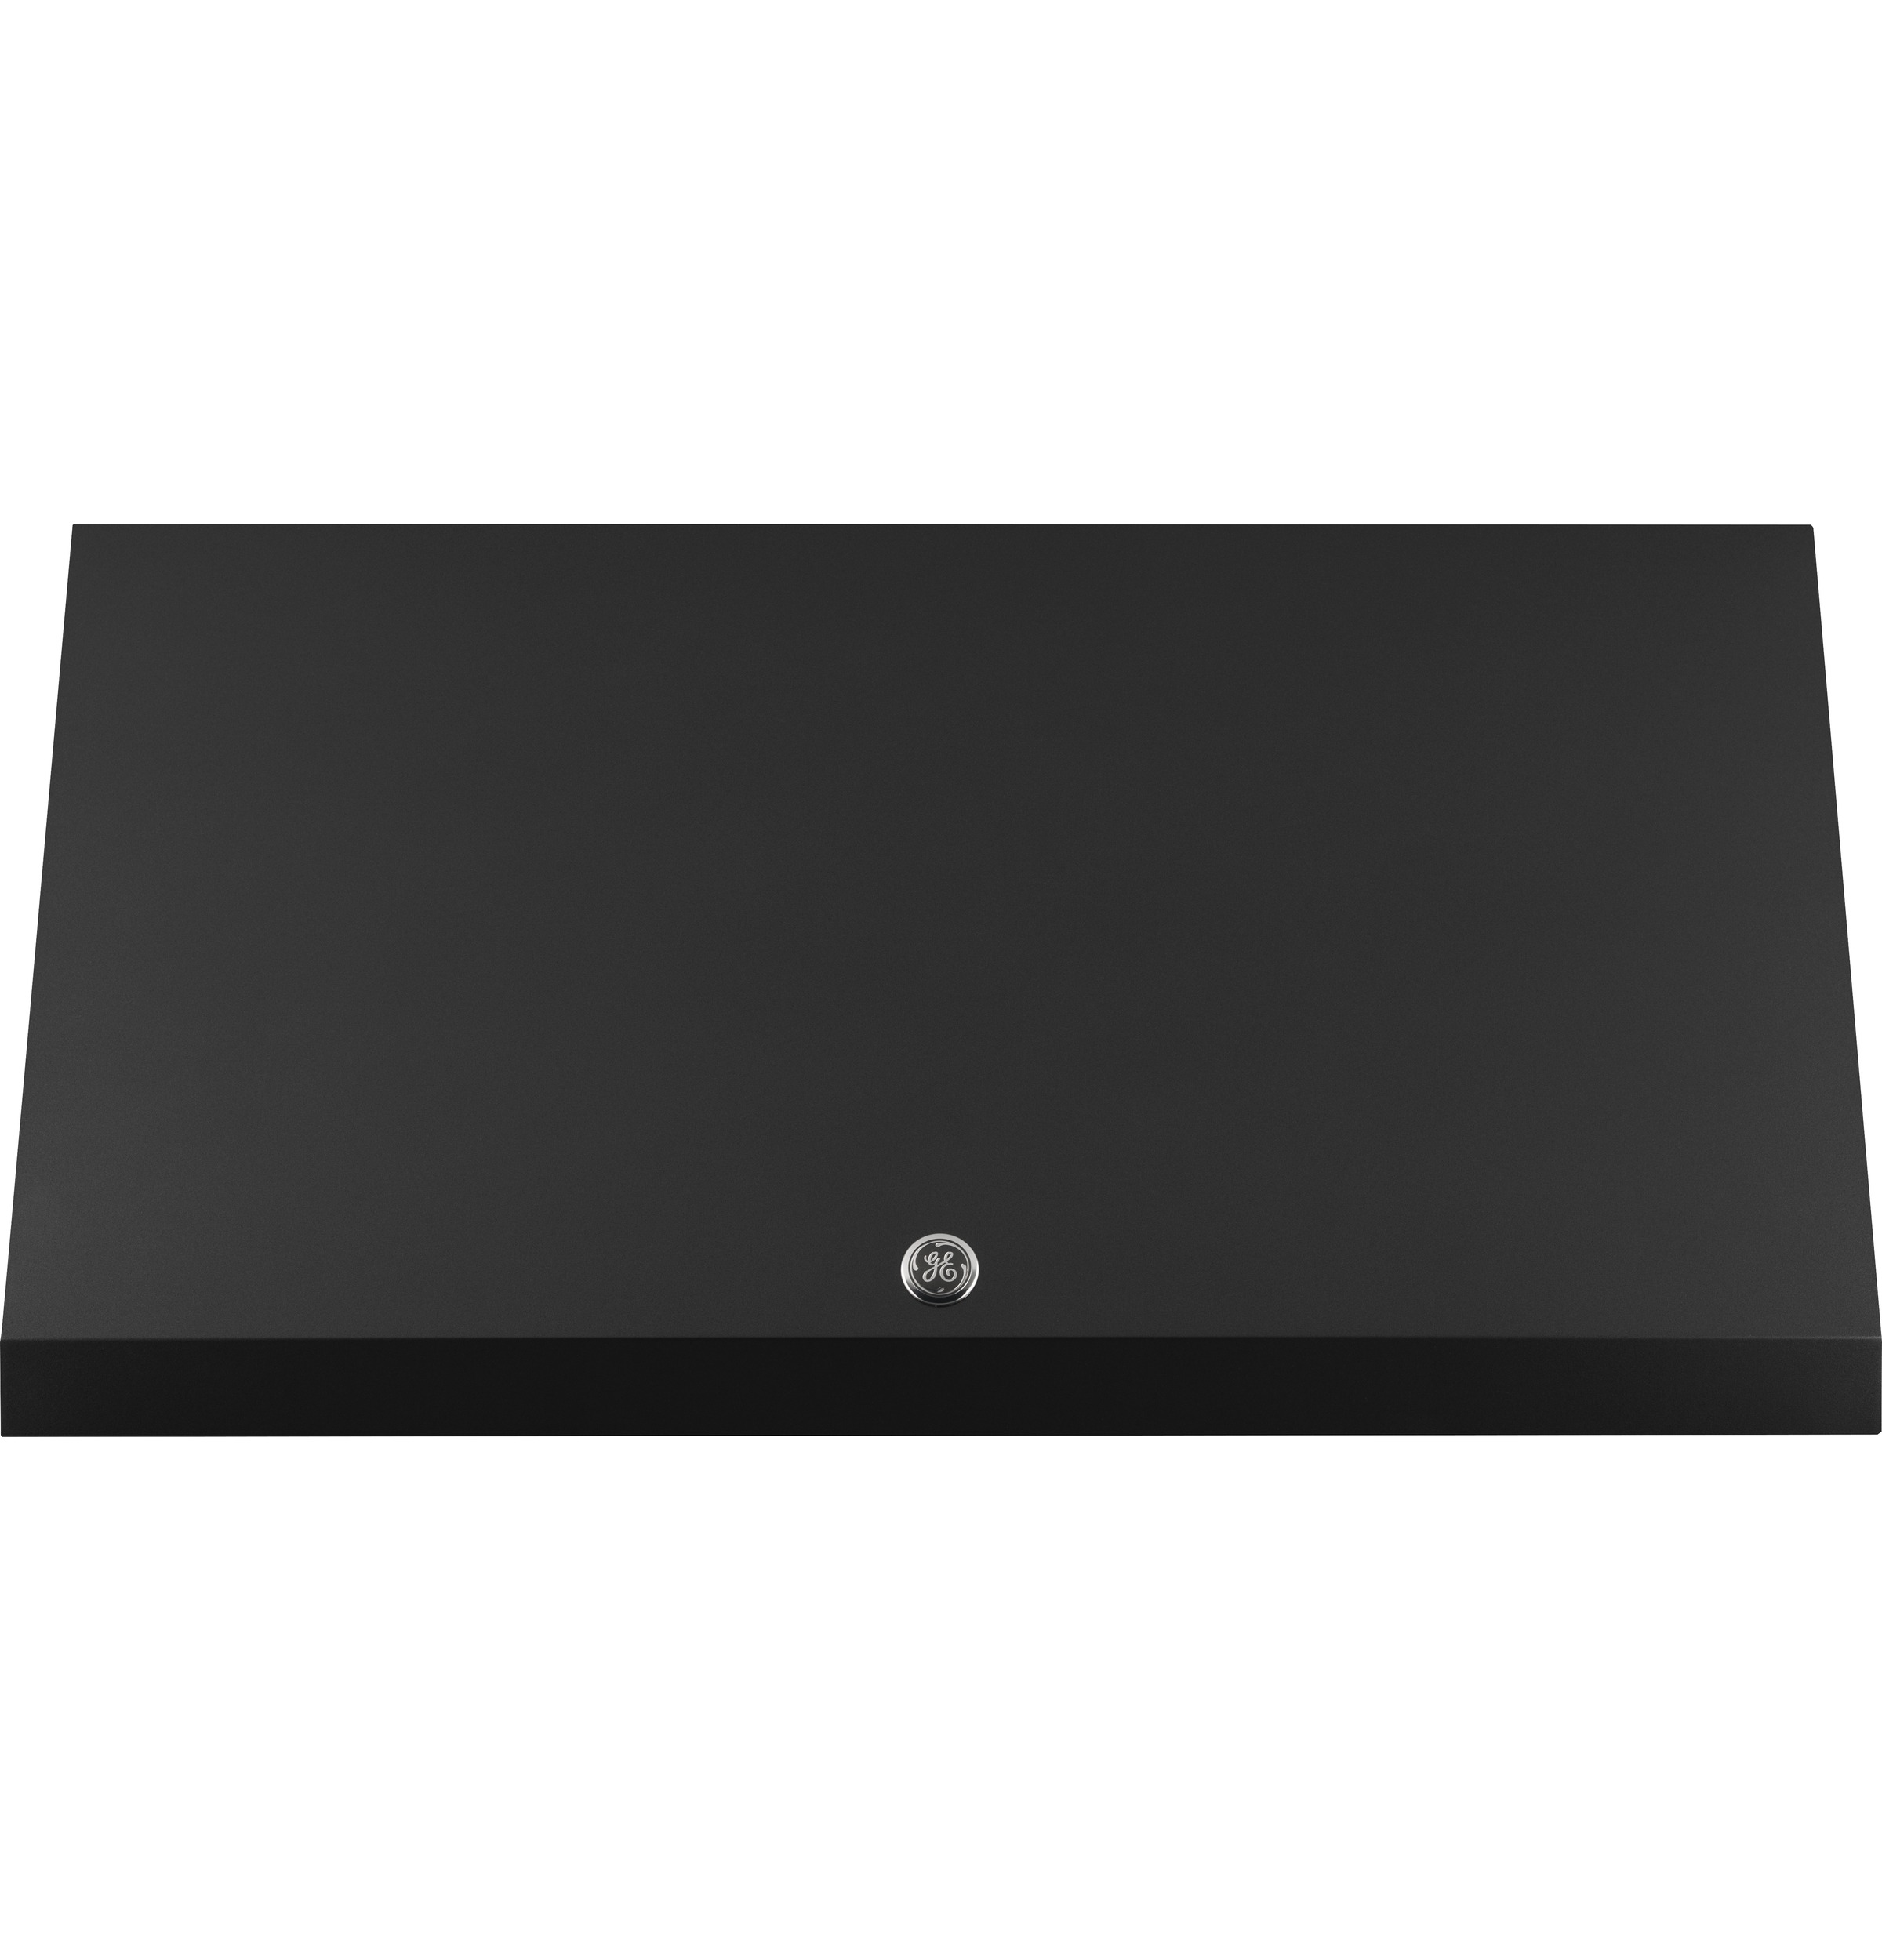 "GE Cafe GE Café™ Series 36"" Commercial Hood"